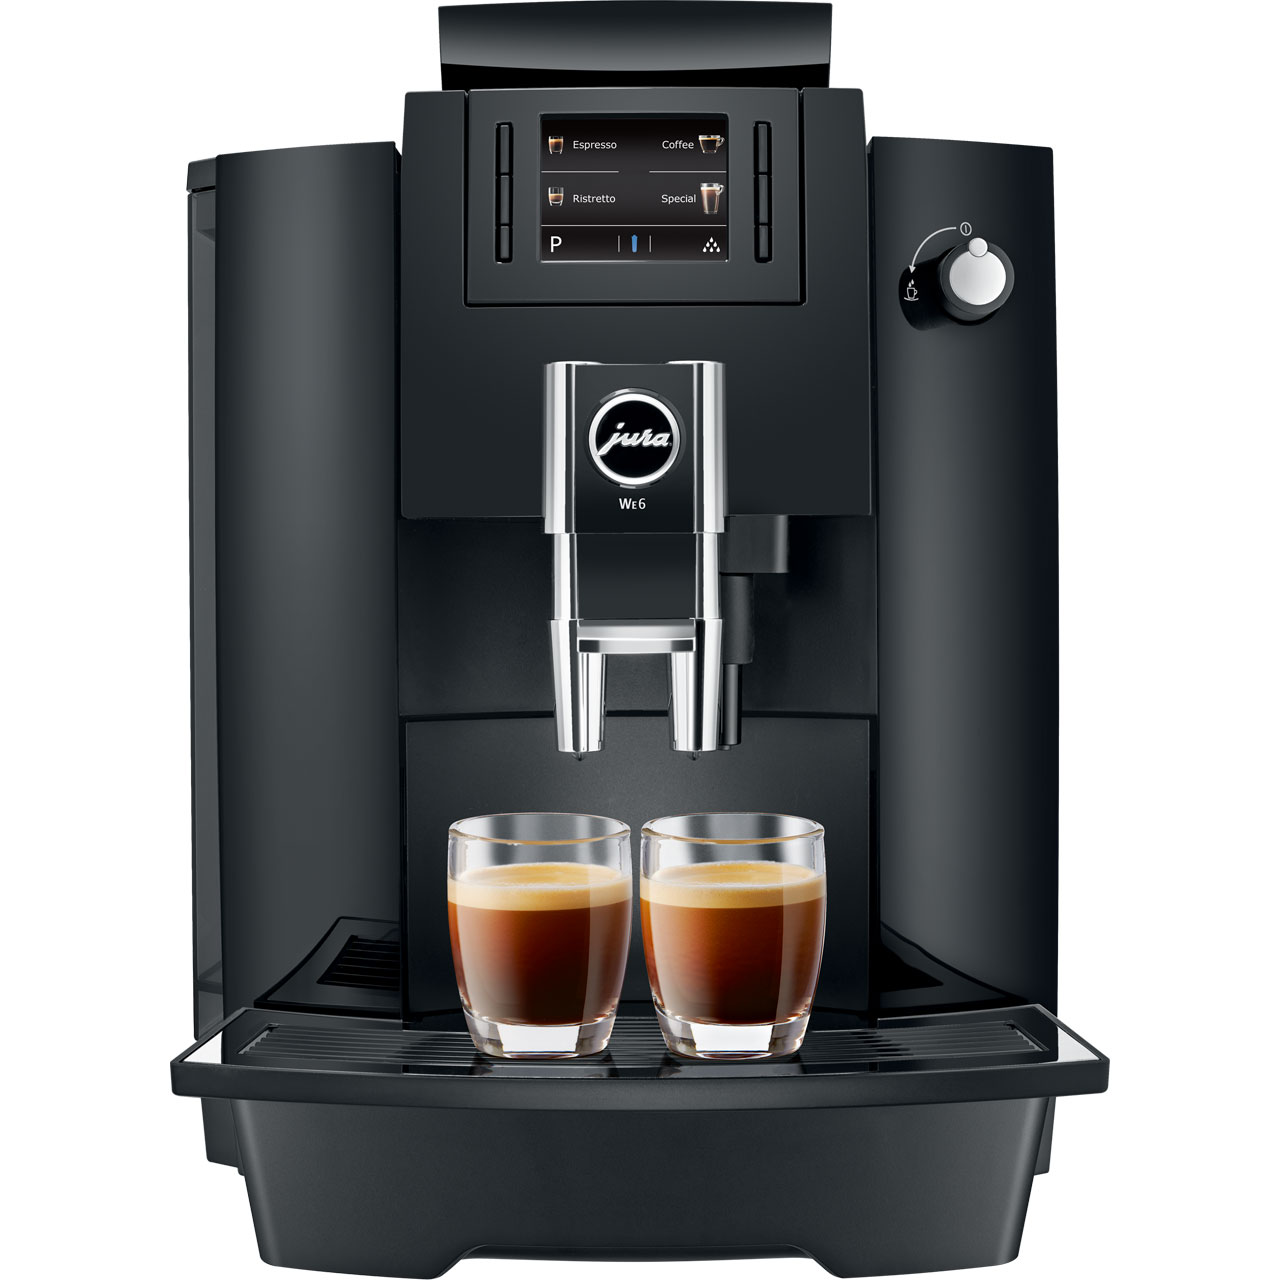 Jura WE6 15114 Commercial Bean to Cup Coffee Machine review